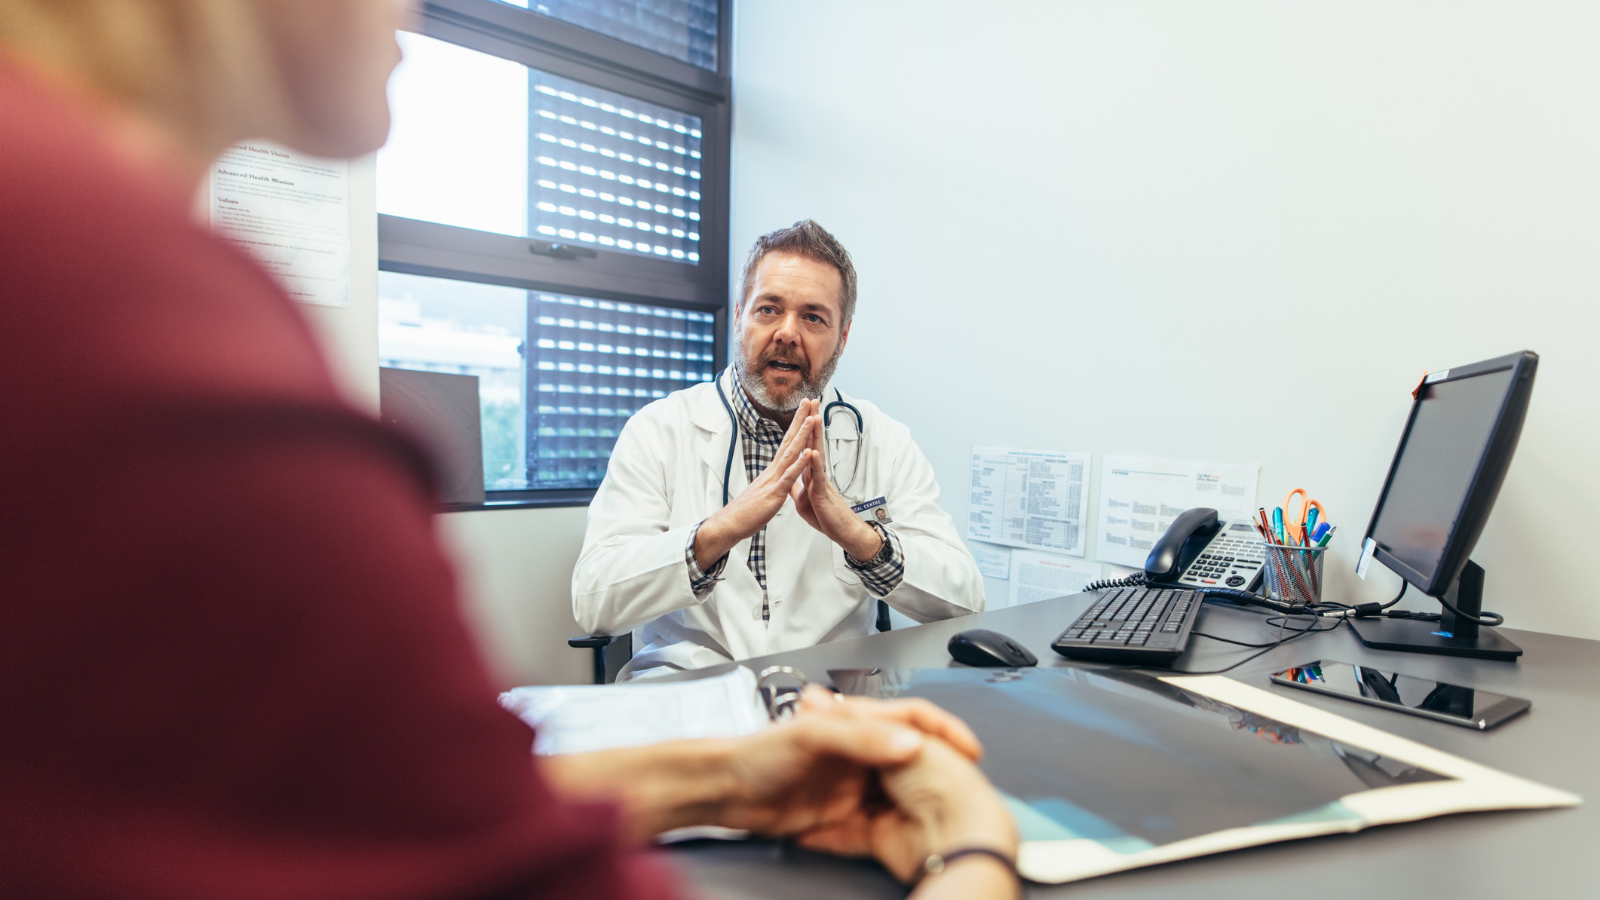 Clinician counseling a patient